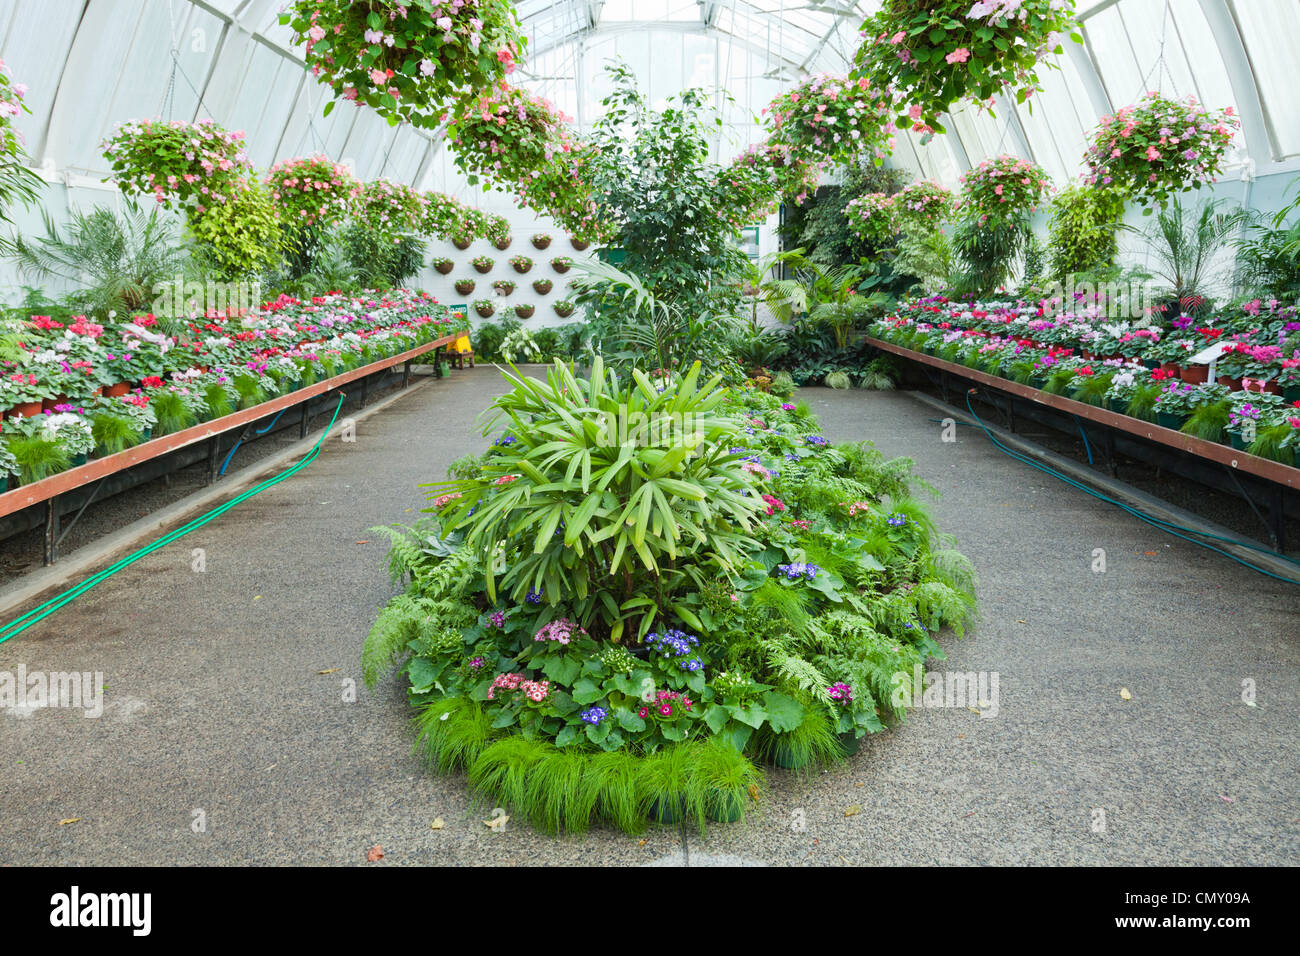 Display of plants in the conservatory in Hagley Park, Christchurch, New Zealand. - Stock Image